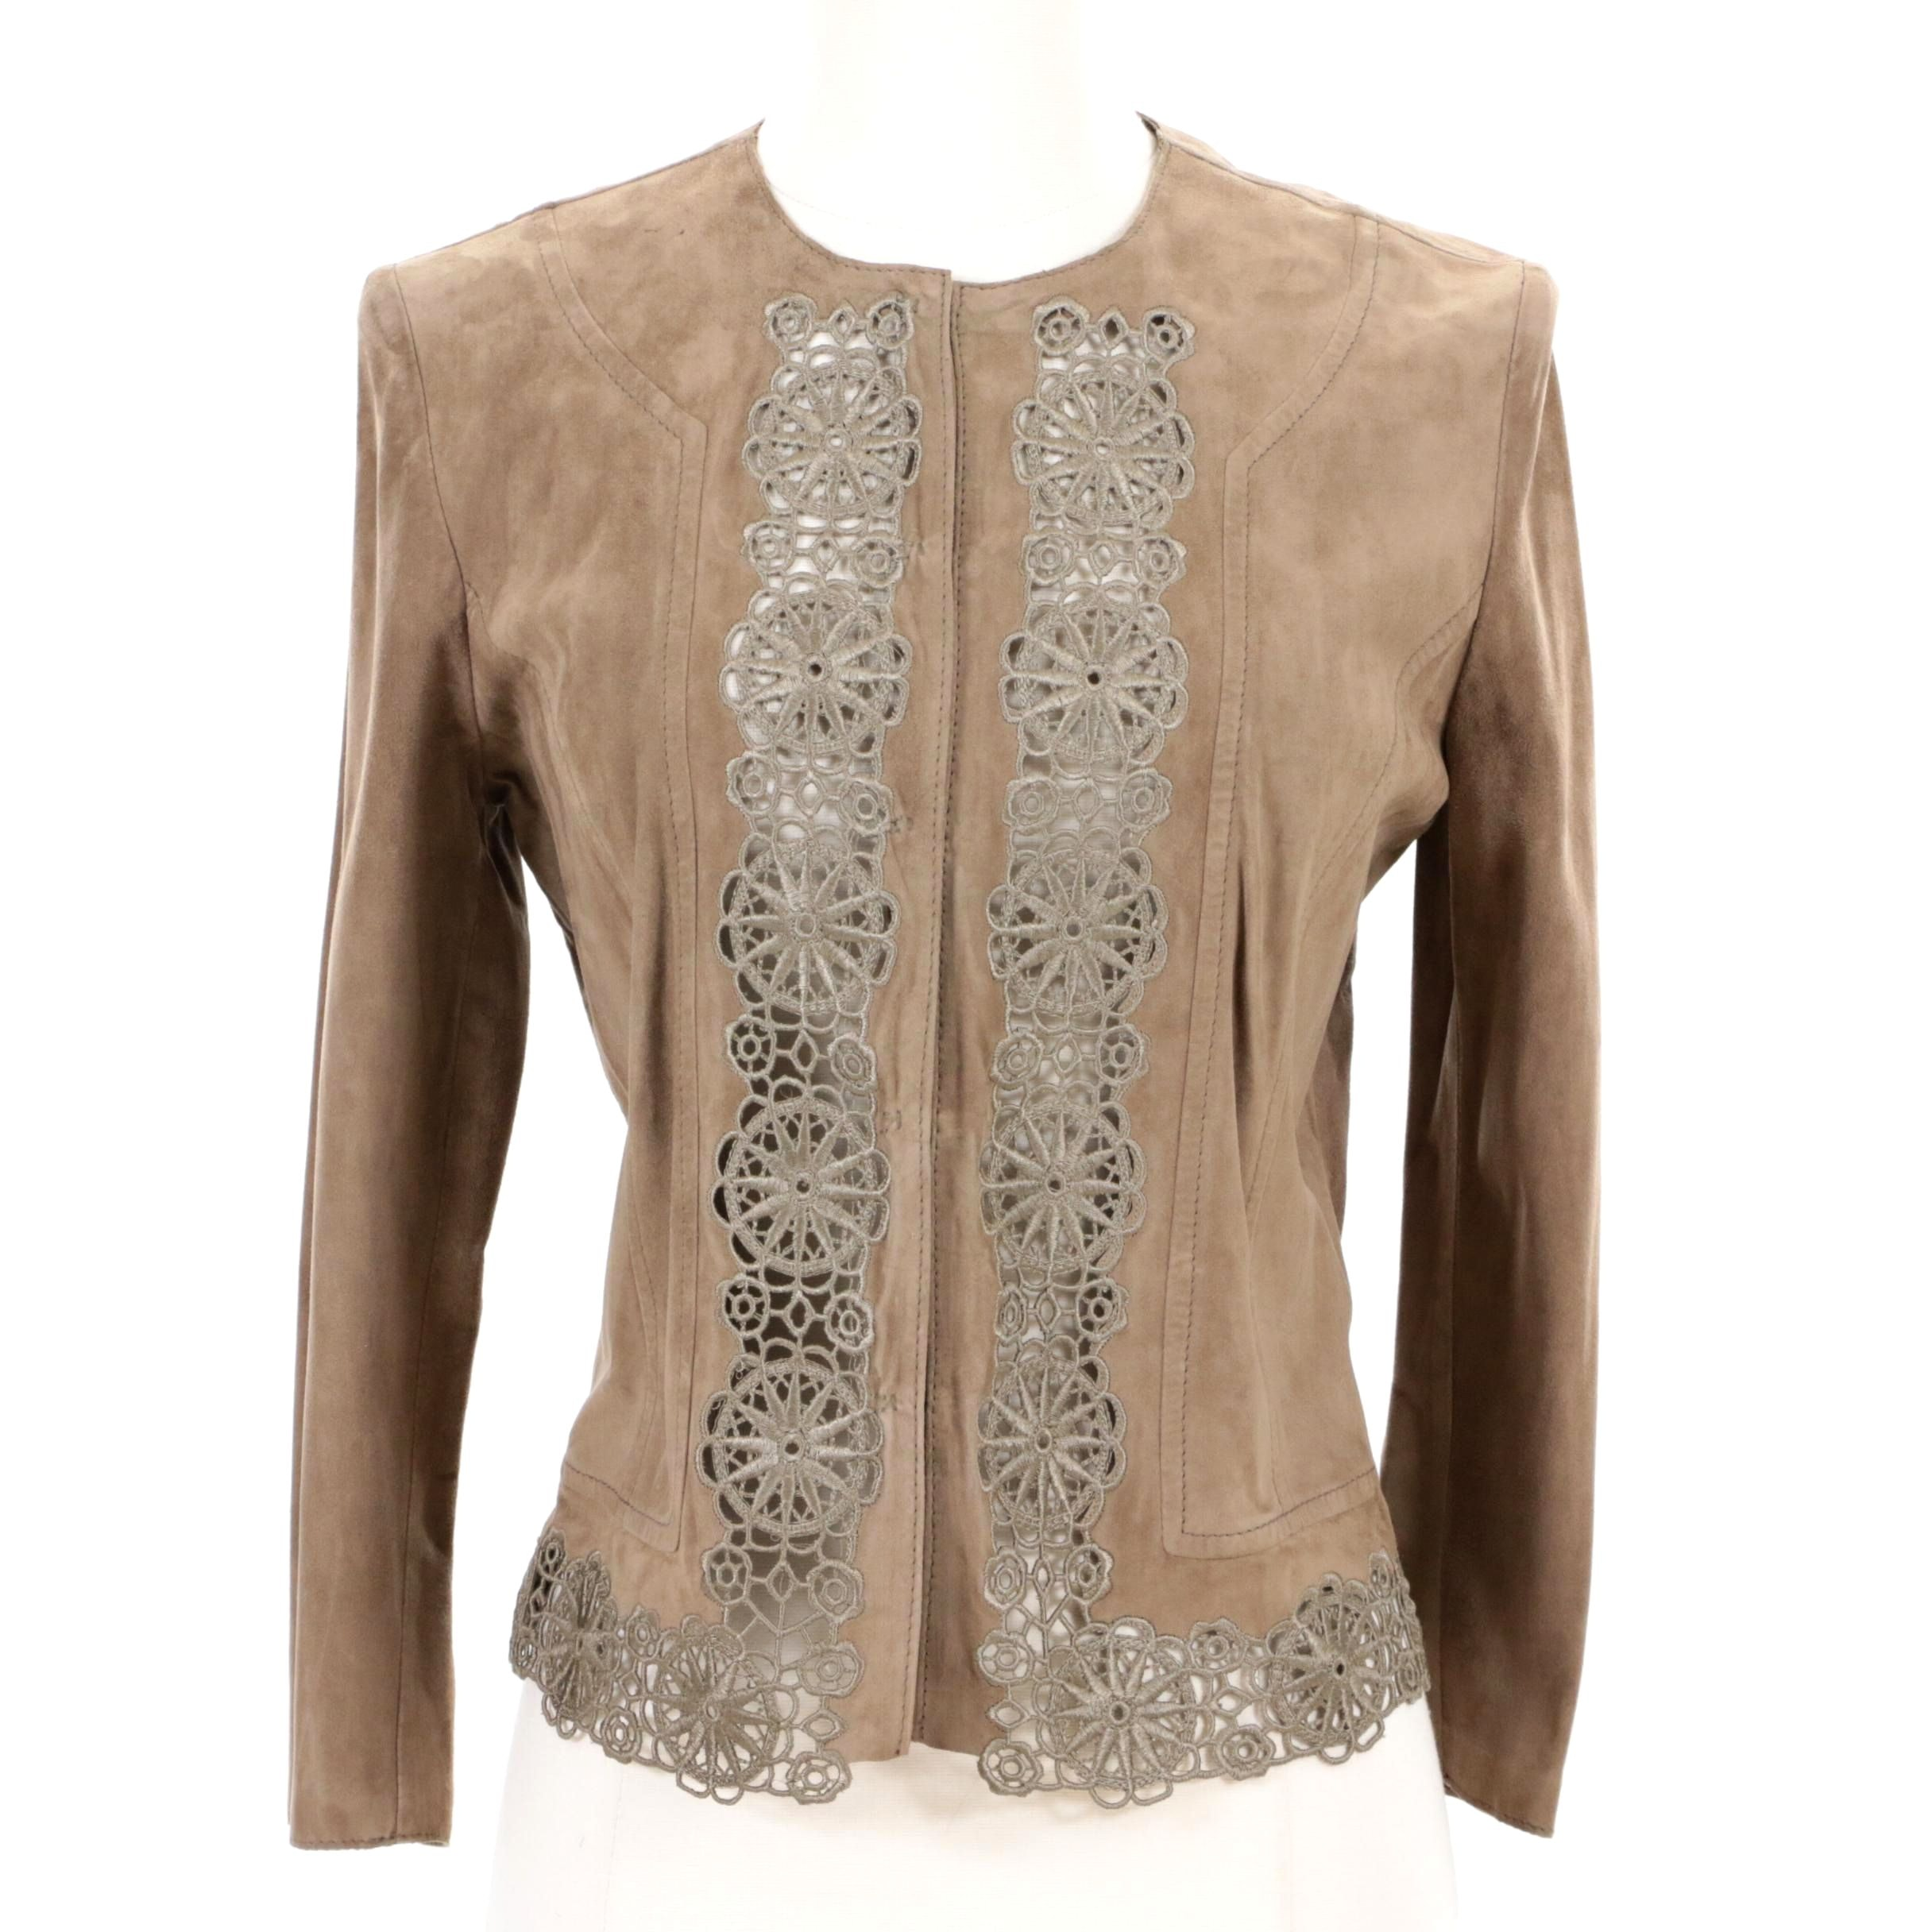 Valentino Taupe Goatskin Jacket with Crocheted Trim